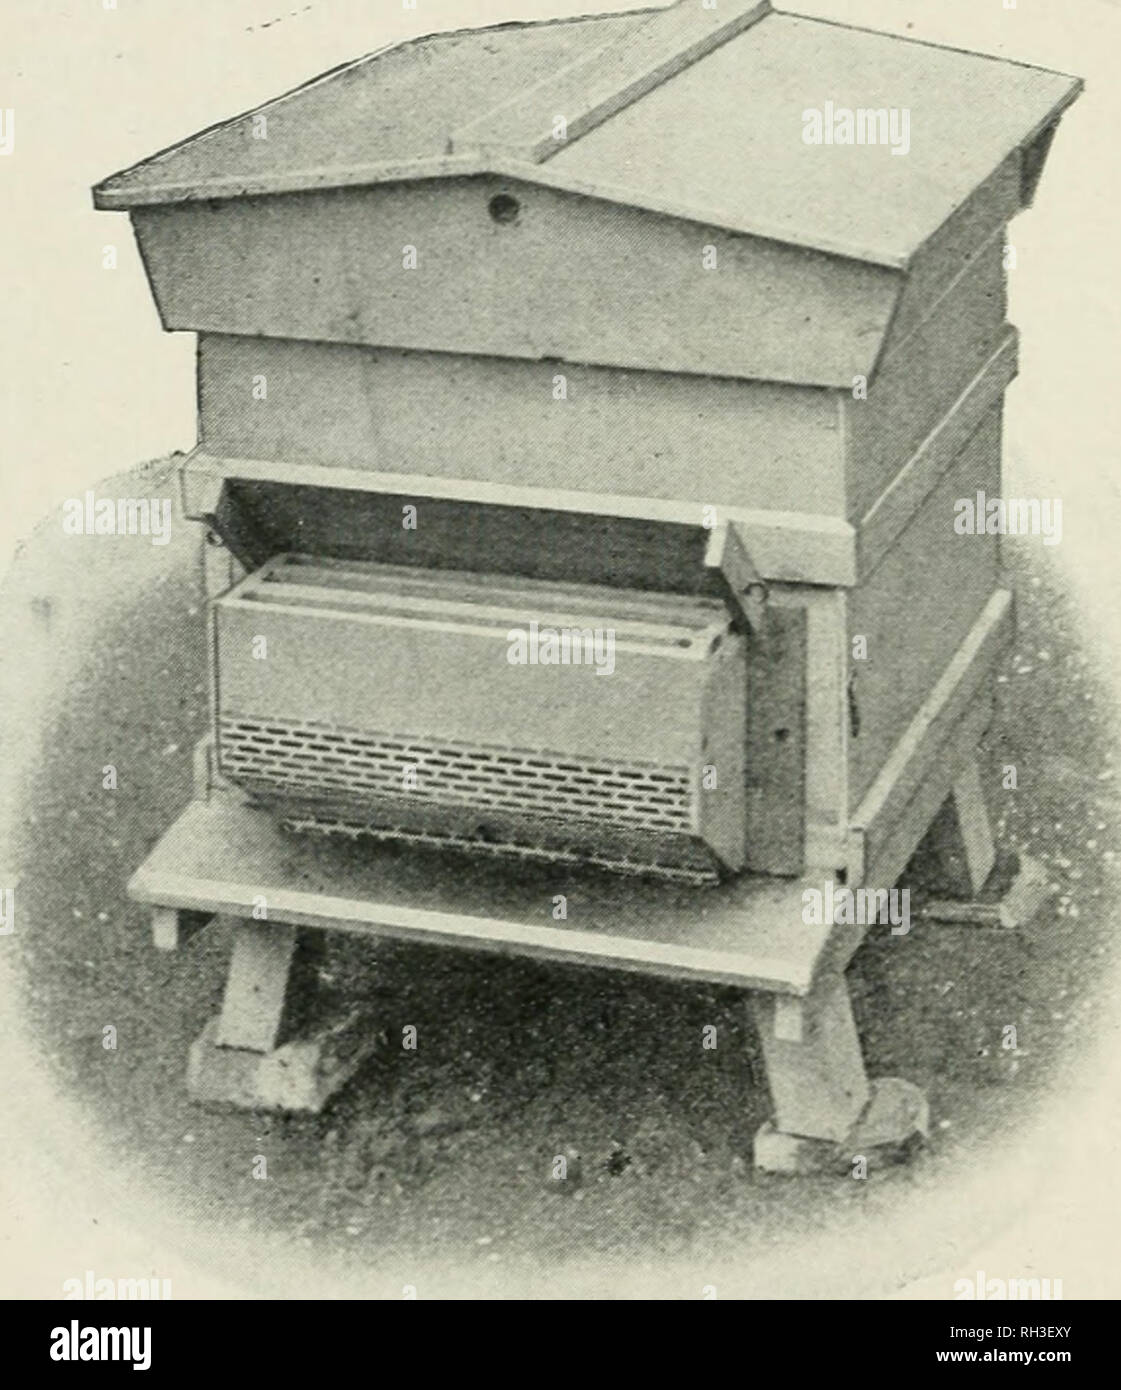 """. British bee-keeper's guide book to the management of bees in movable-comb hives, and the use of modern bee-appliances. Illustrated. Bee culture. 22 PREVENTION OF SWARMING. used in forming- nuclei or strengthening weaker stocl^s. Should the outer combs be broodless and filled with hone', additional breeding-space can be given by extracting it. Whatever plan may be adopted, the bees should never feel cramped for want of room, or. Fig. 9.—Prevention of Swarming. The """" Brice """" Appliance (as fixed). be distressed by lack of ventilation. Artificial swarm- ing is dealt with later on (see - Stock Image"""